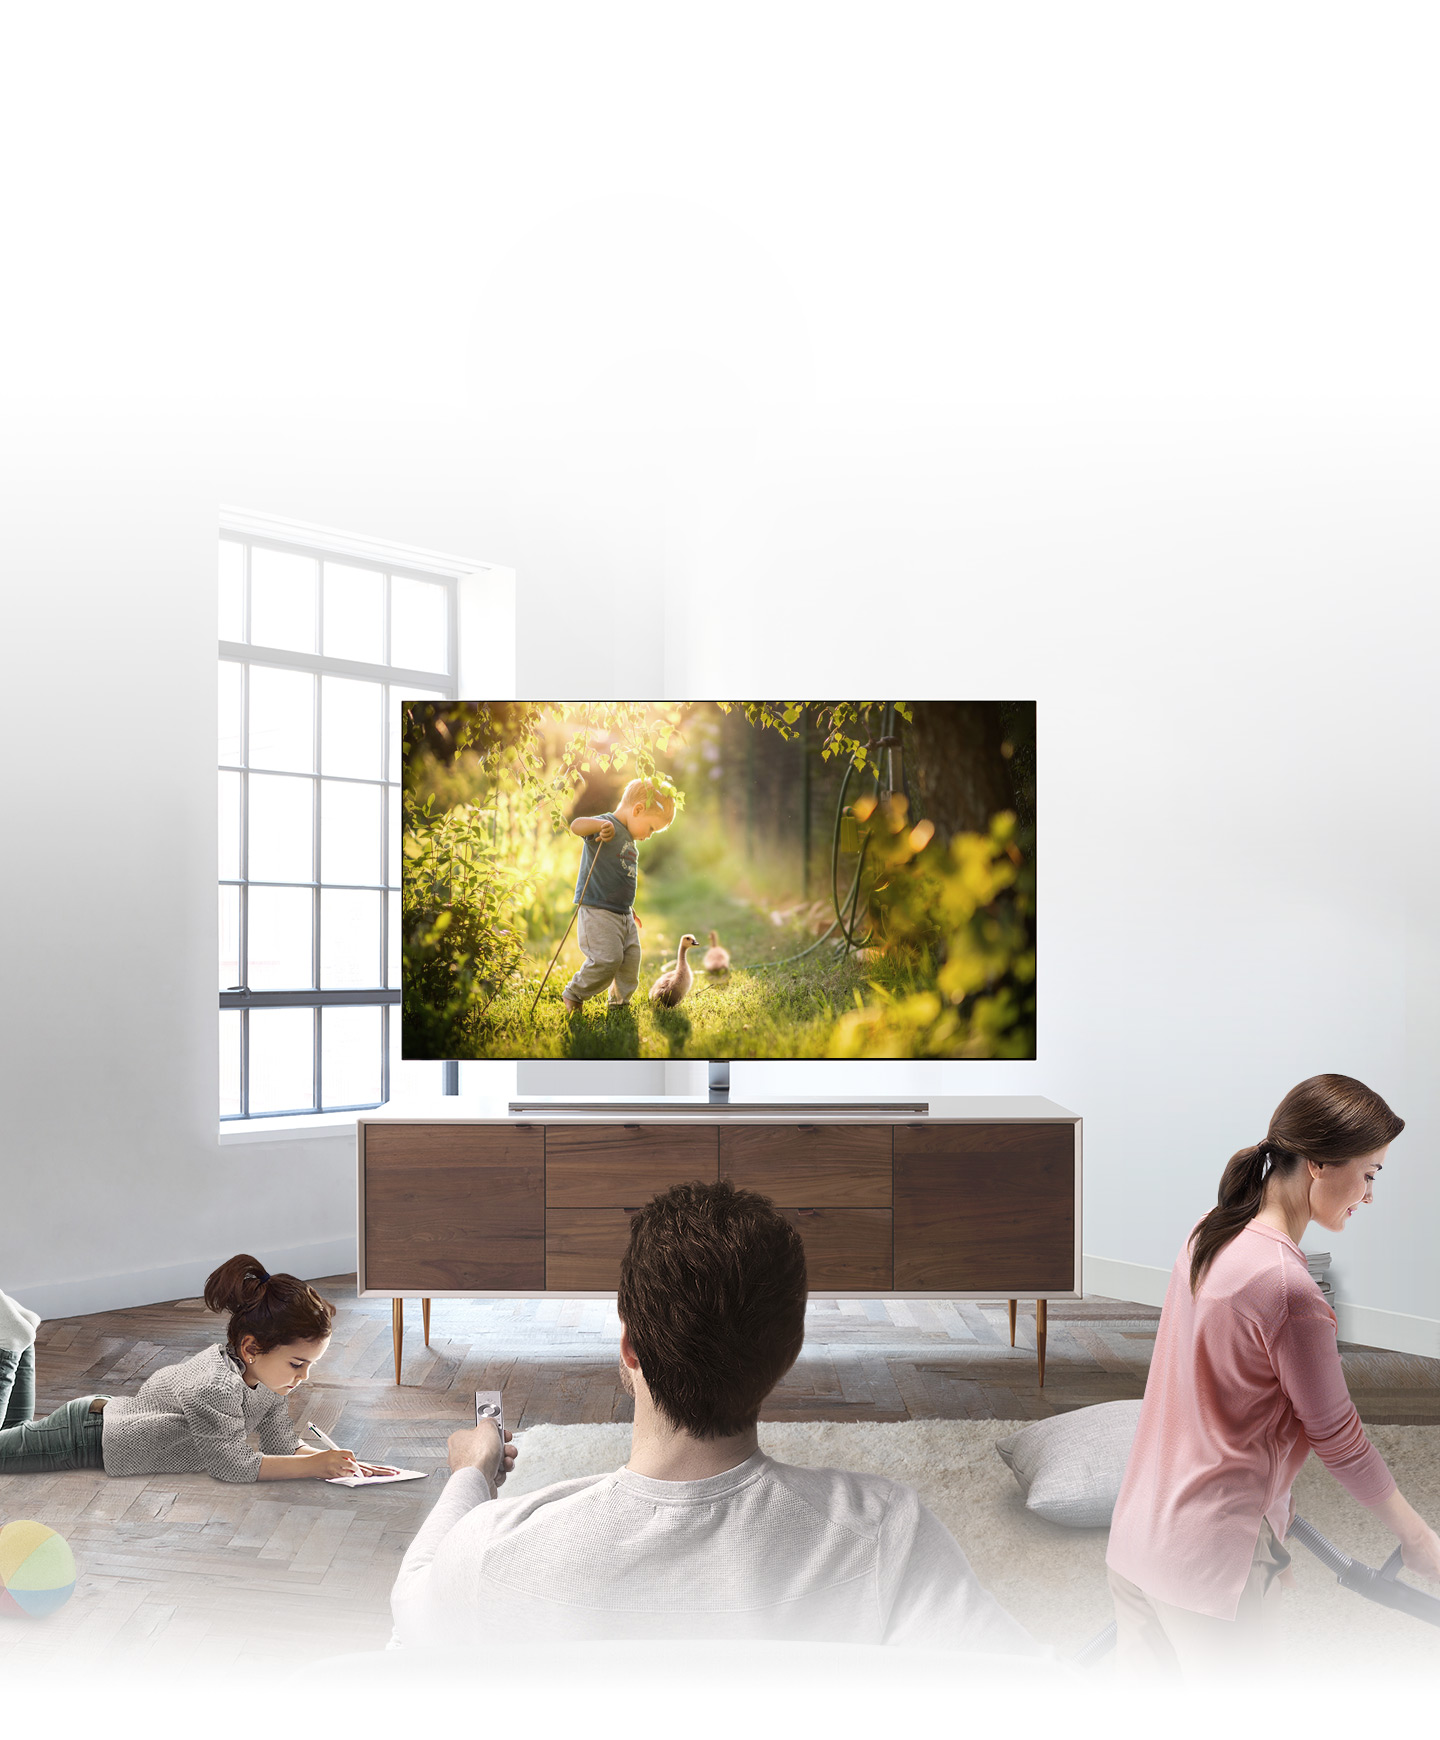 It shows father's back and he is watching QLED TV at the direct front in the living room. In the left side of the living room, a child is drawing and mom is cleaning in the right side of the living room.